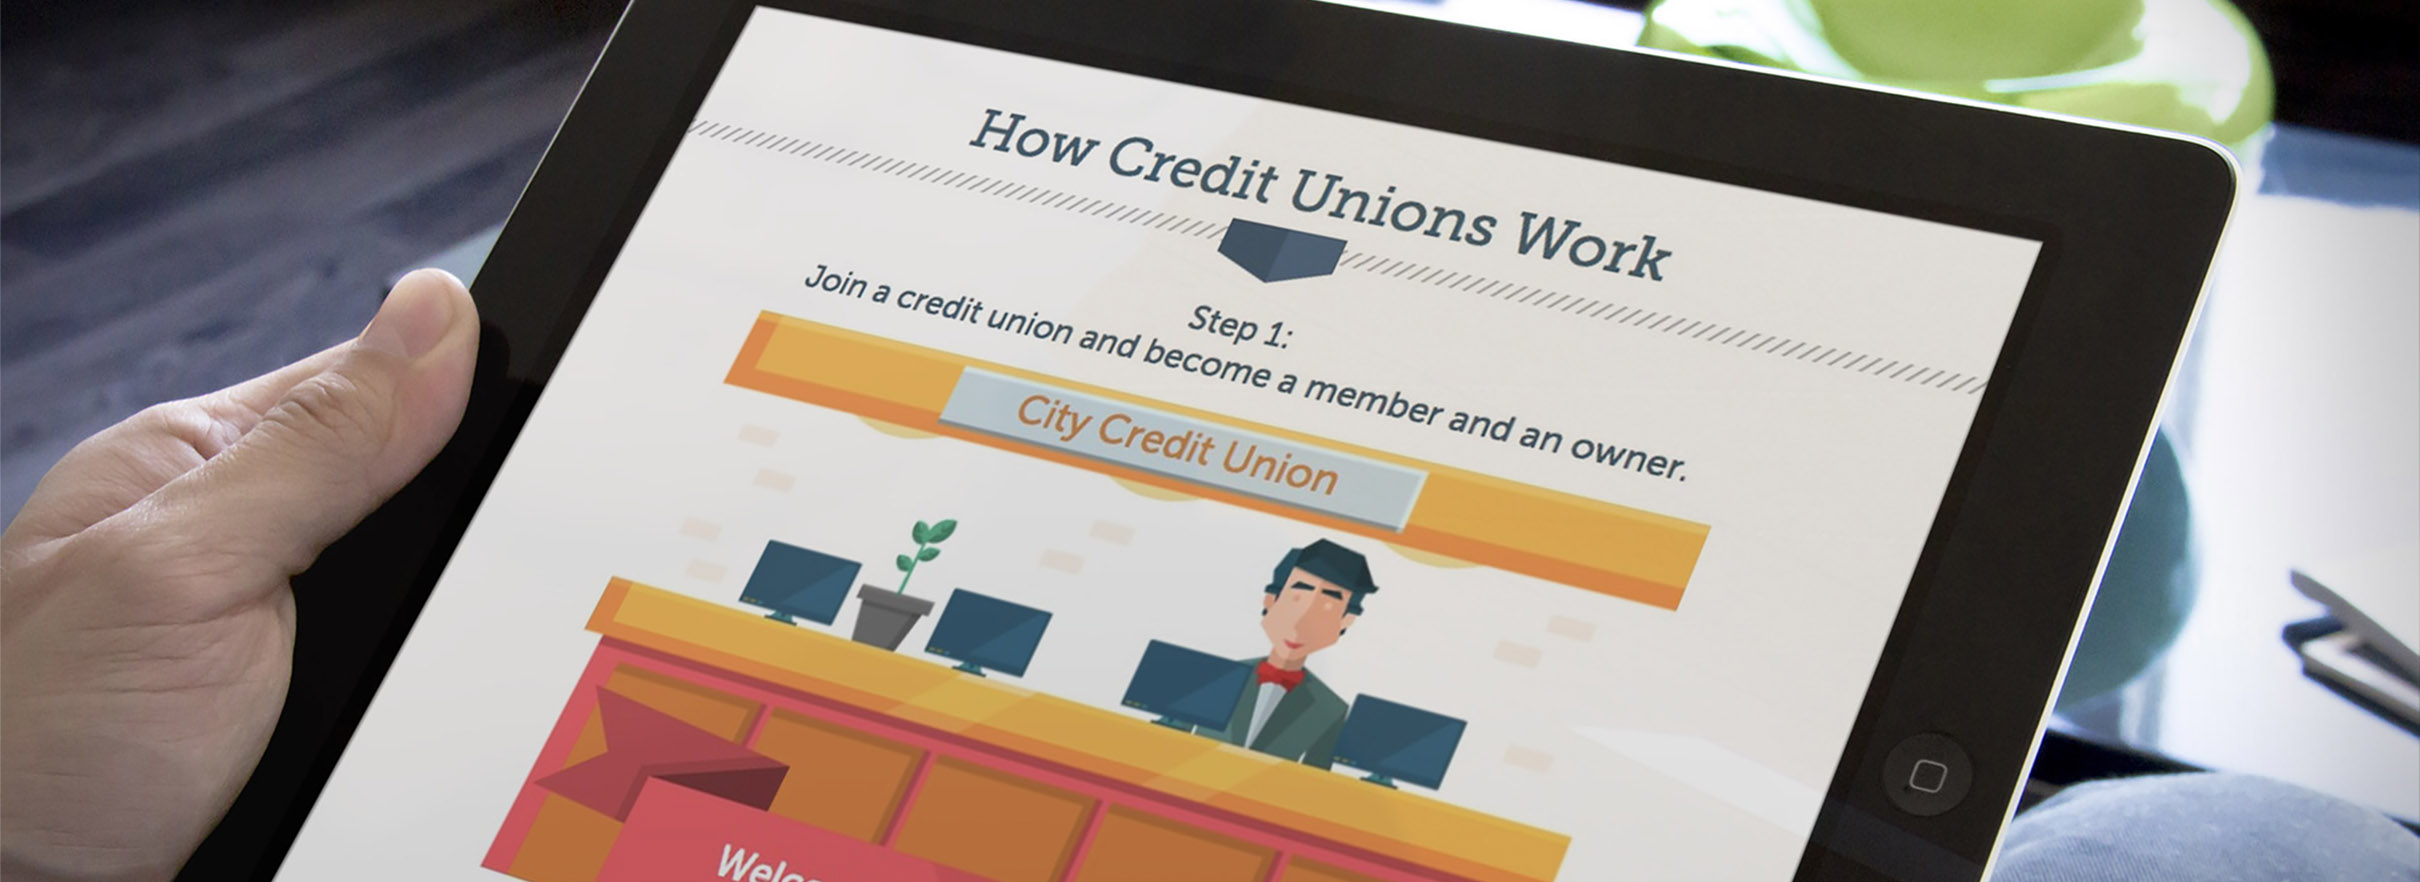 How Credit Unions Work. Step 1 Join a credit union and become a member and an owner.